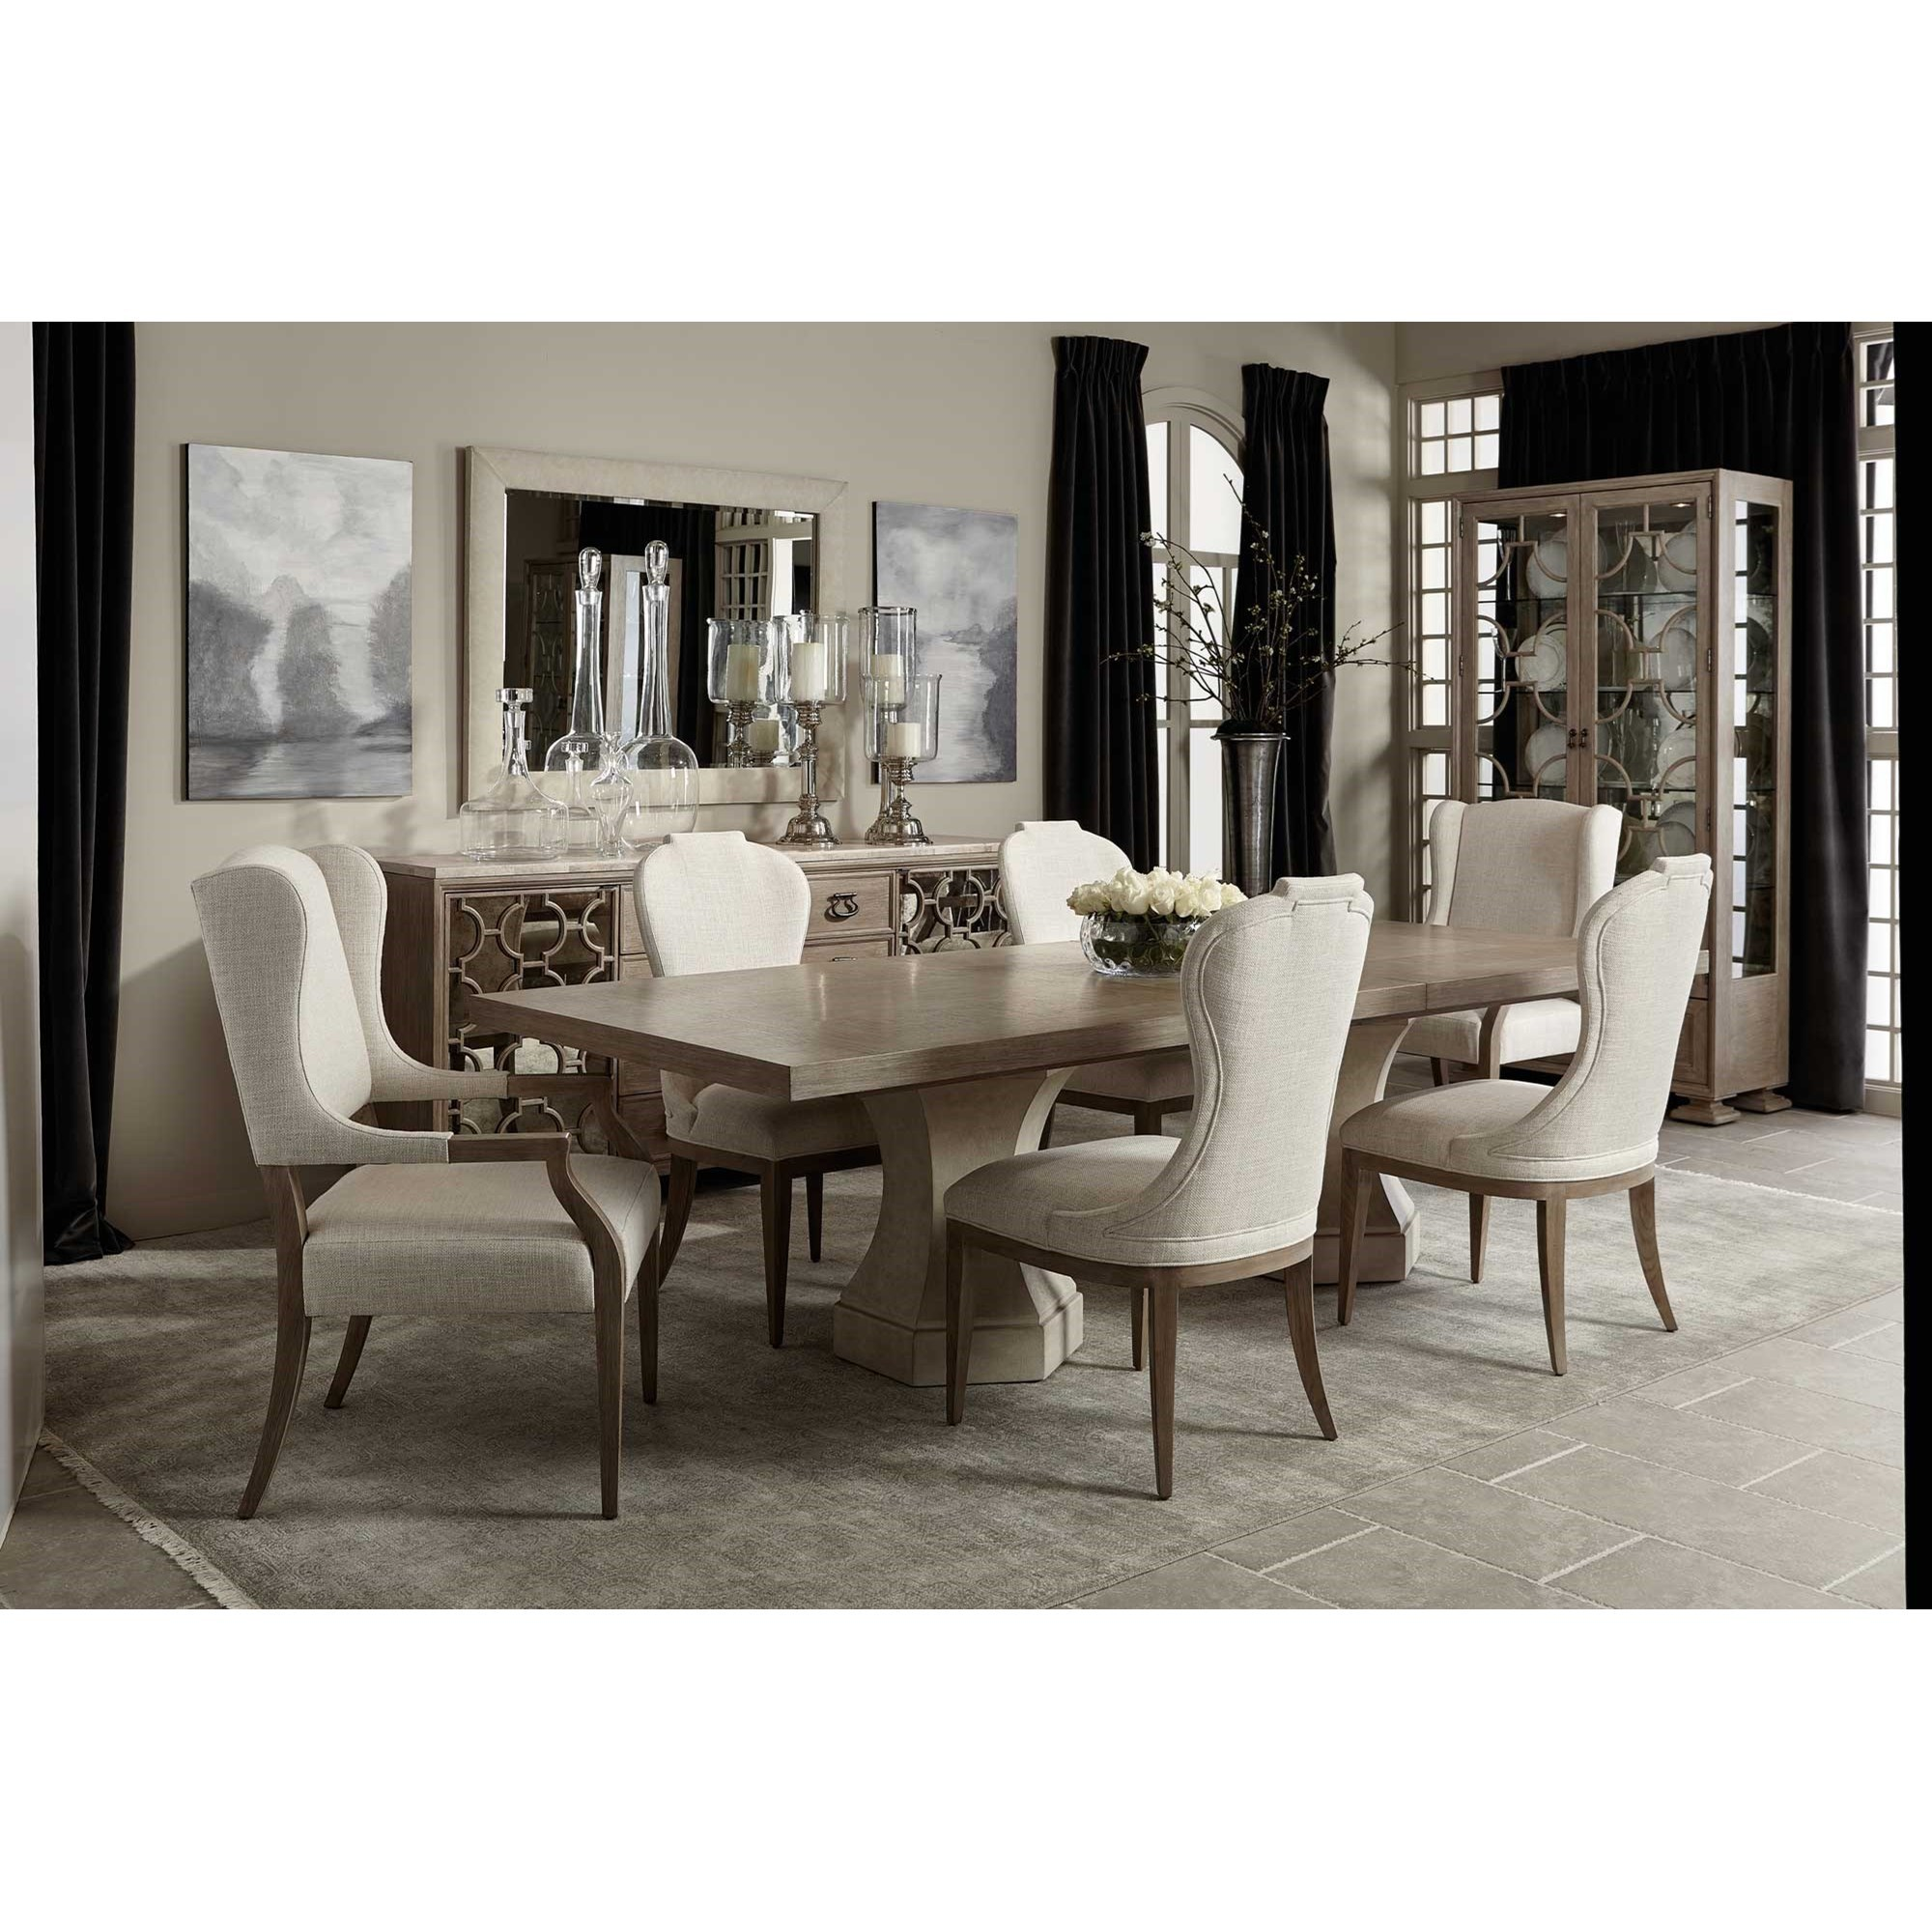 Santa Barbara 7-Piece Table and Chair Set by Bernhardt at Baer's Furniture